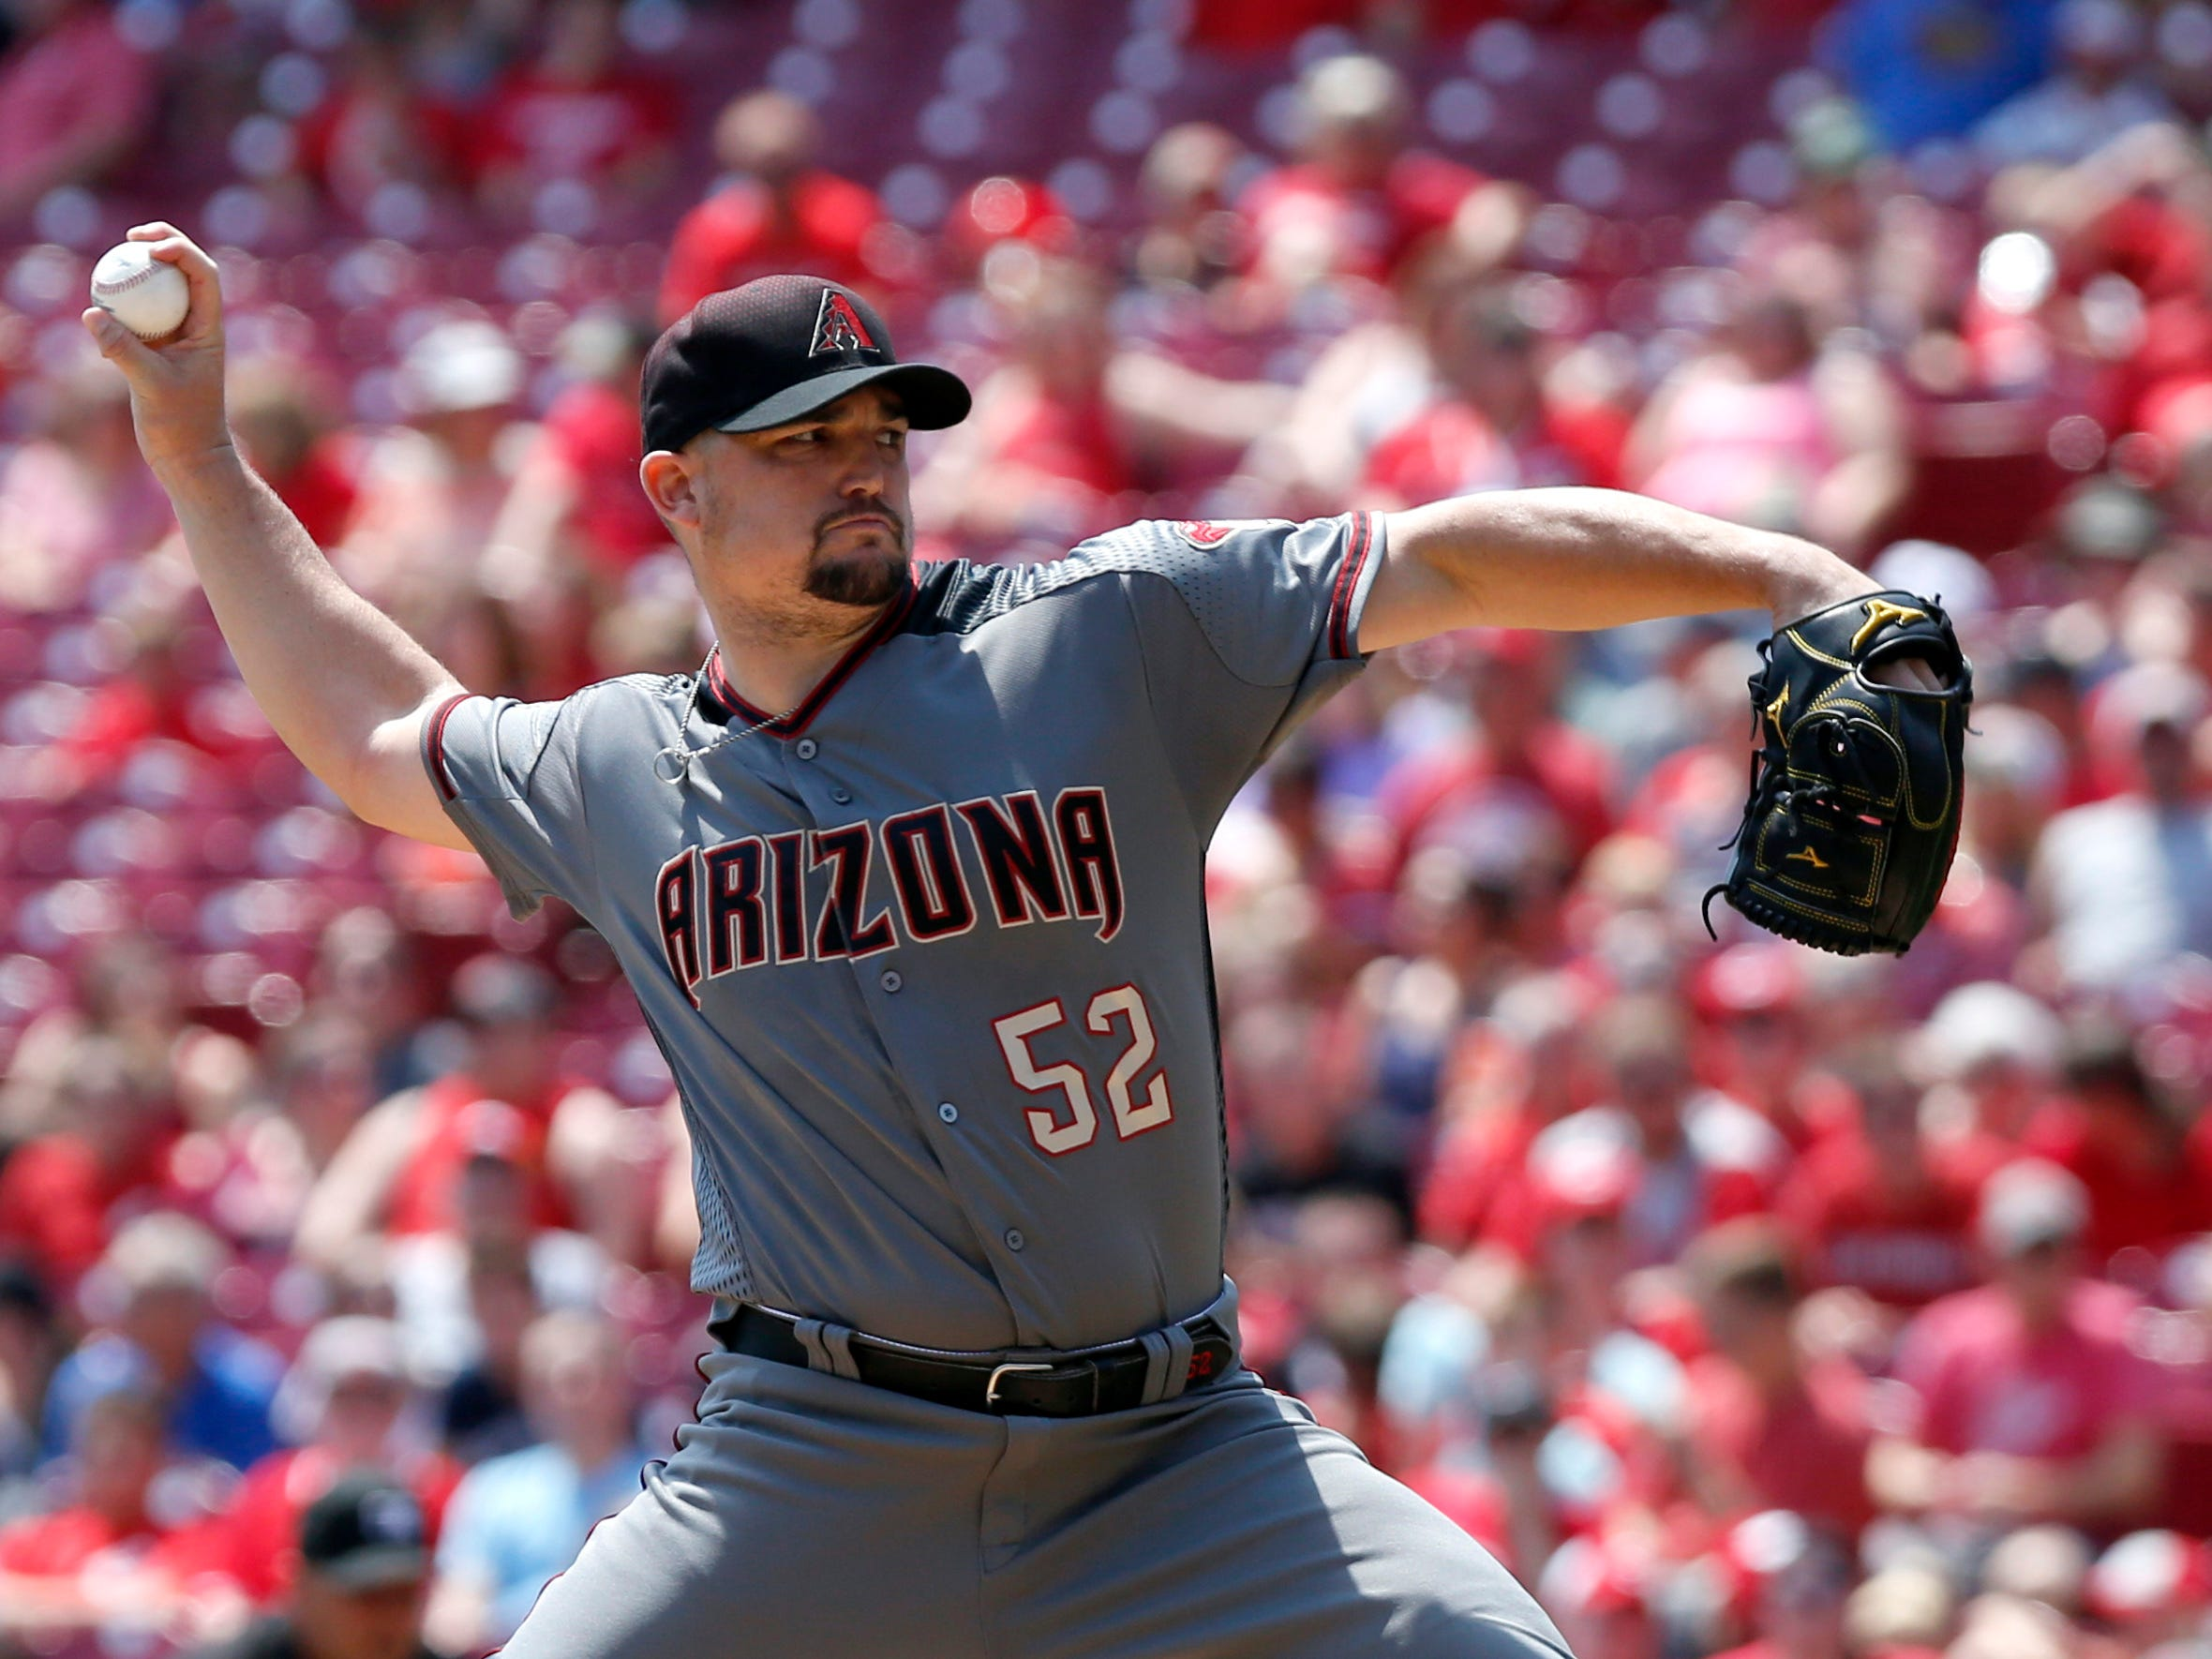 Aug 12, 2018; Cincinnati, OH, USA; Arizona Diamondbacks starting pitcher Zack Godley (52) throws against the Cincinnati Reds during the first inning at Great American Ball Park. Mandatory Credit: David Kohl-USA TODAY Sports